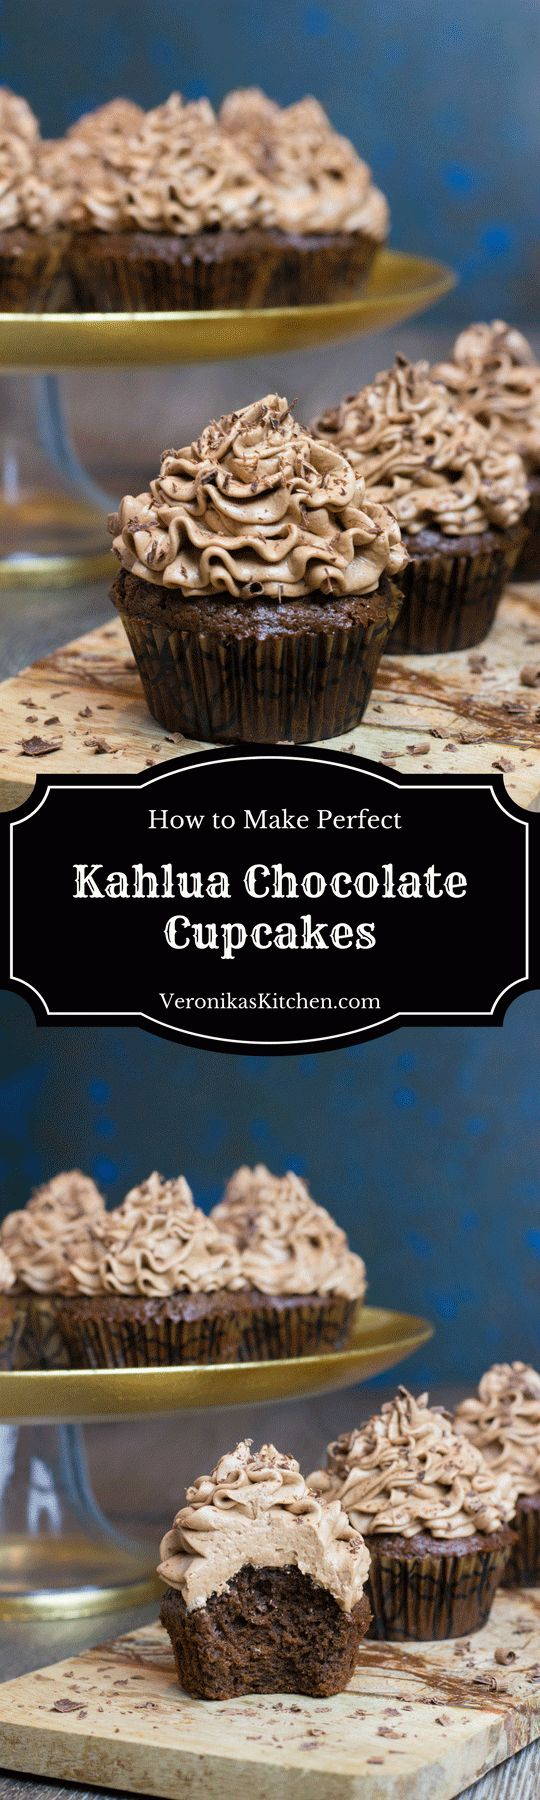 Kahlua Chocolate Cupcakes are a perfect dessert idea for chocolate and coffee lovers, featuring rich and decadent chocolate and coffee flavor with a touch of Kahlua.(Bake Equipment)